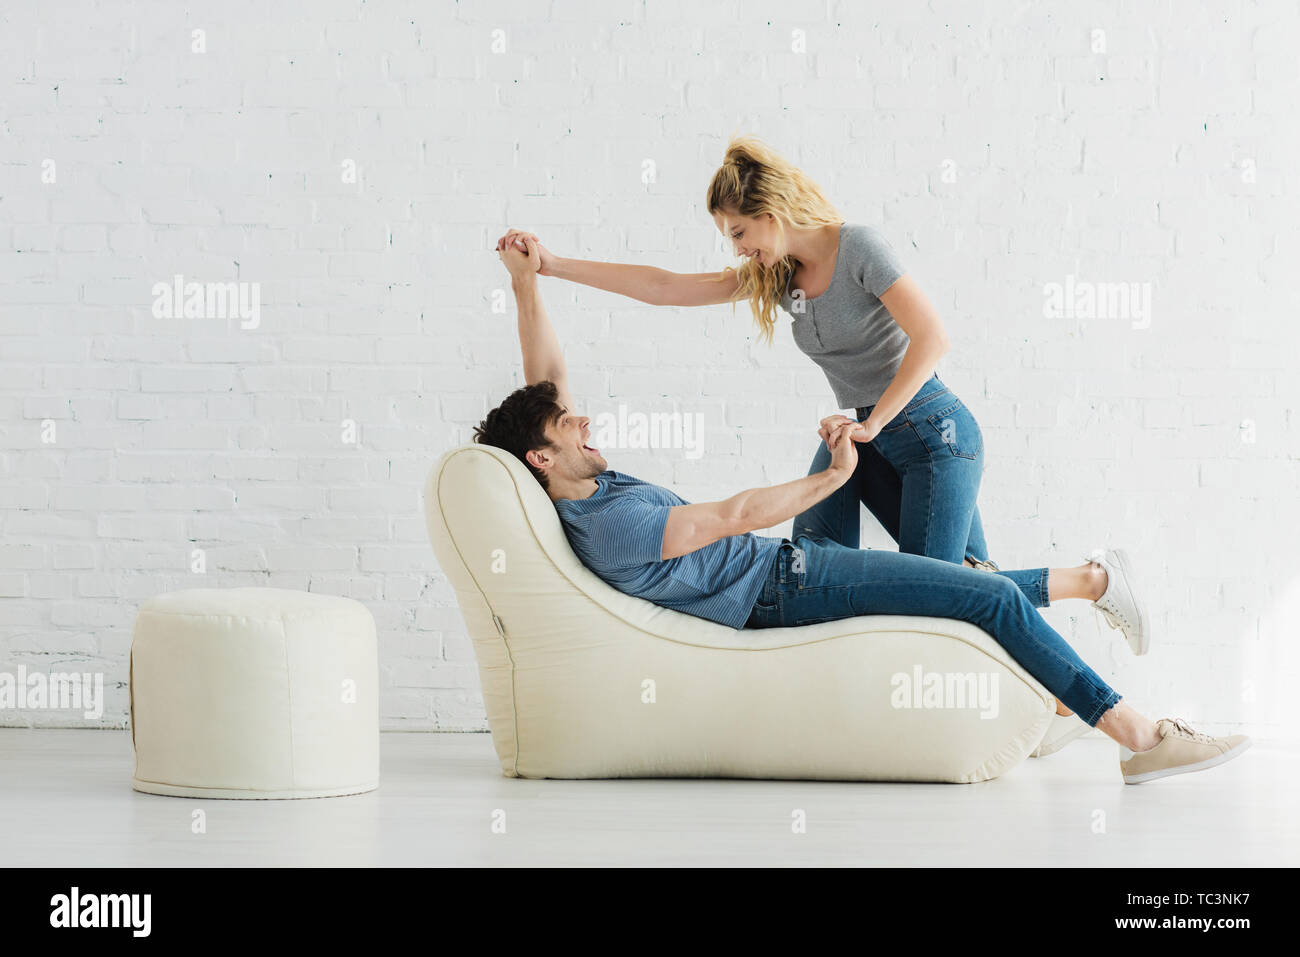 handsome man lying on bean bag chair and holding hands with blonde girl - Stock Image